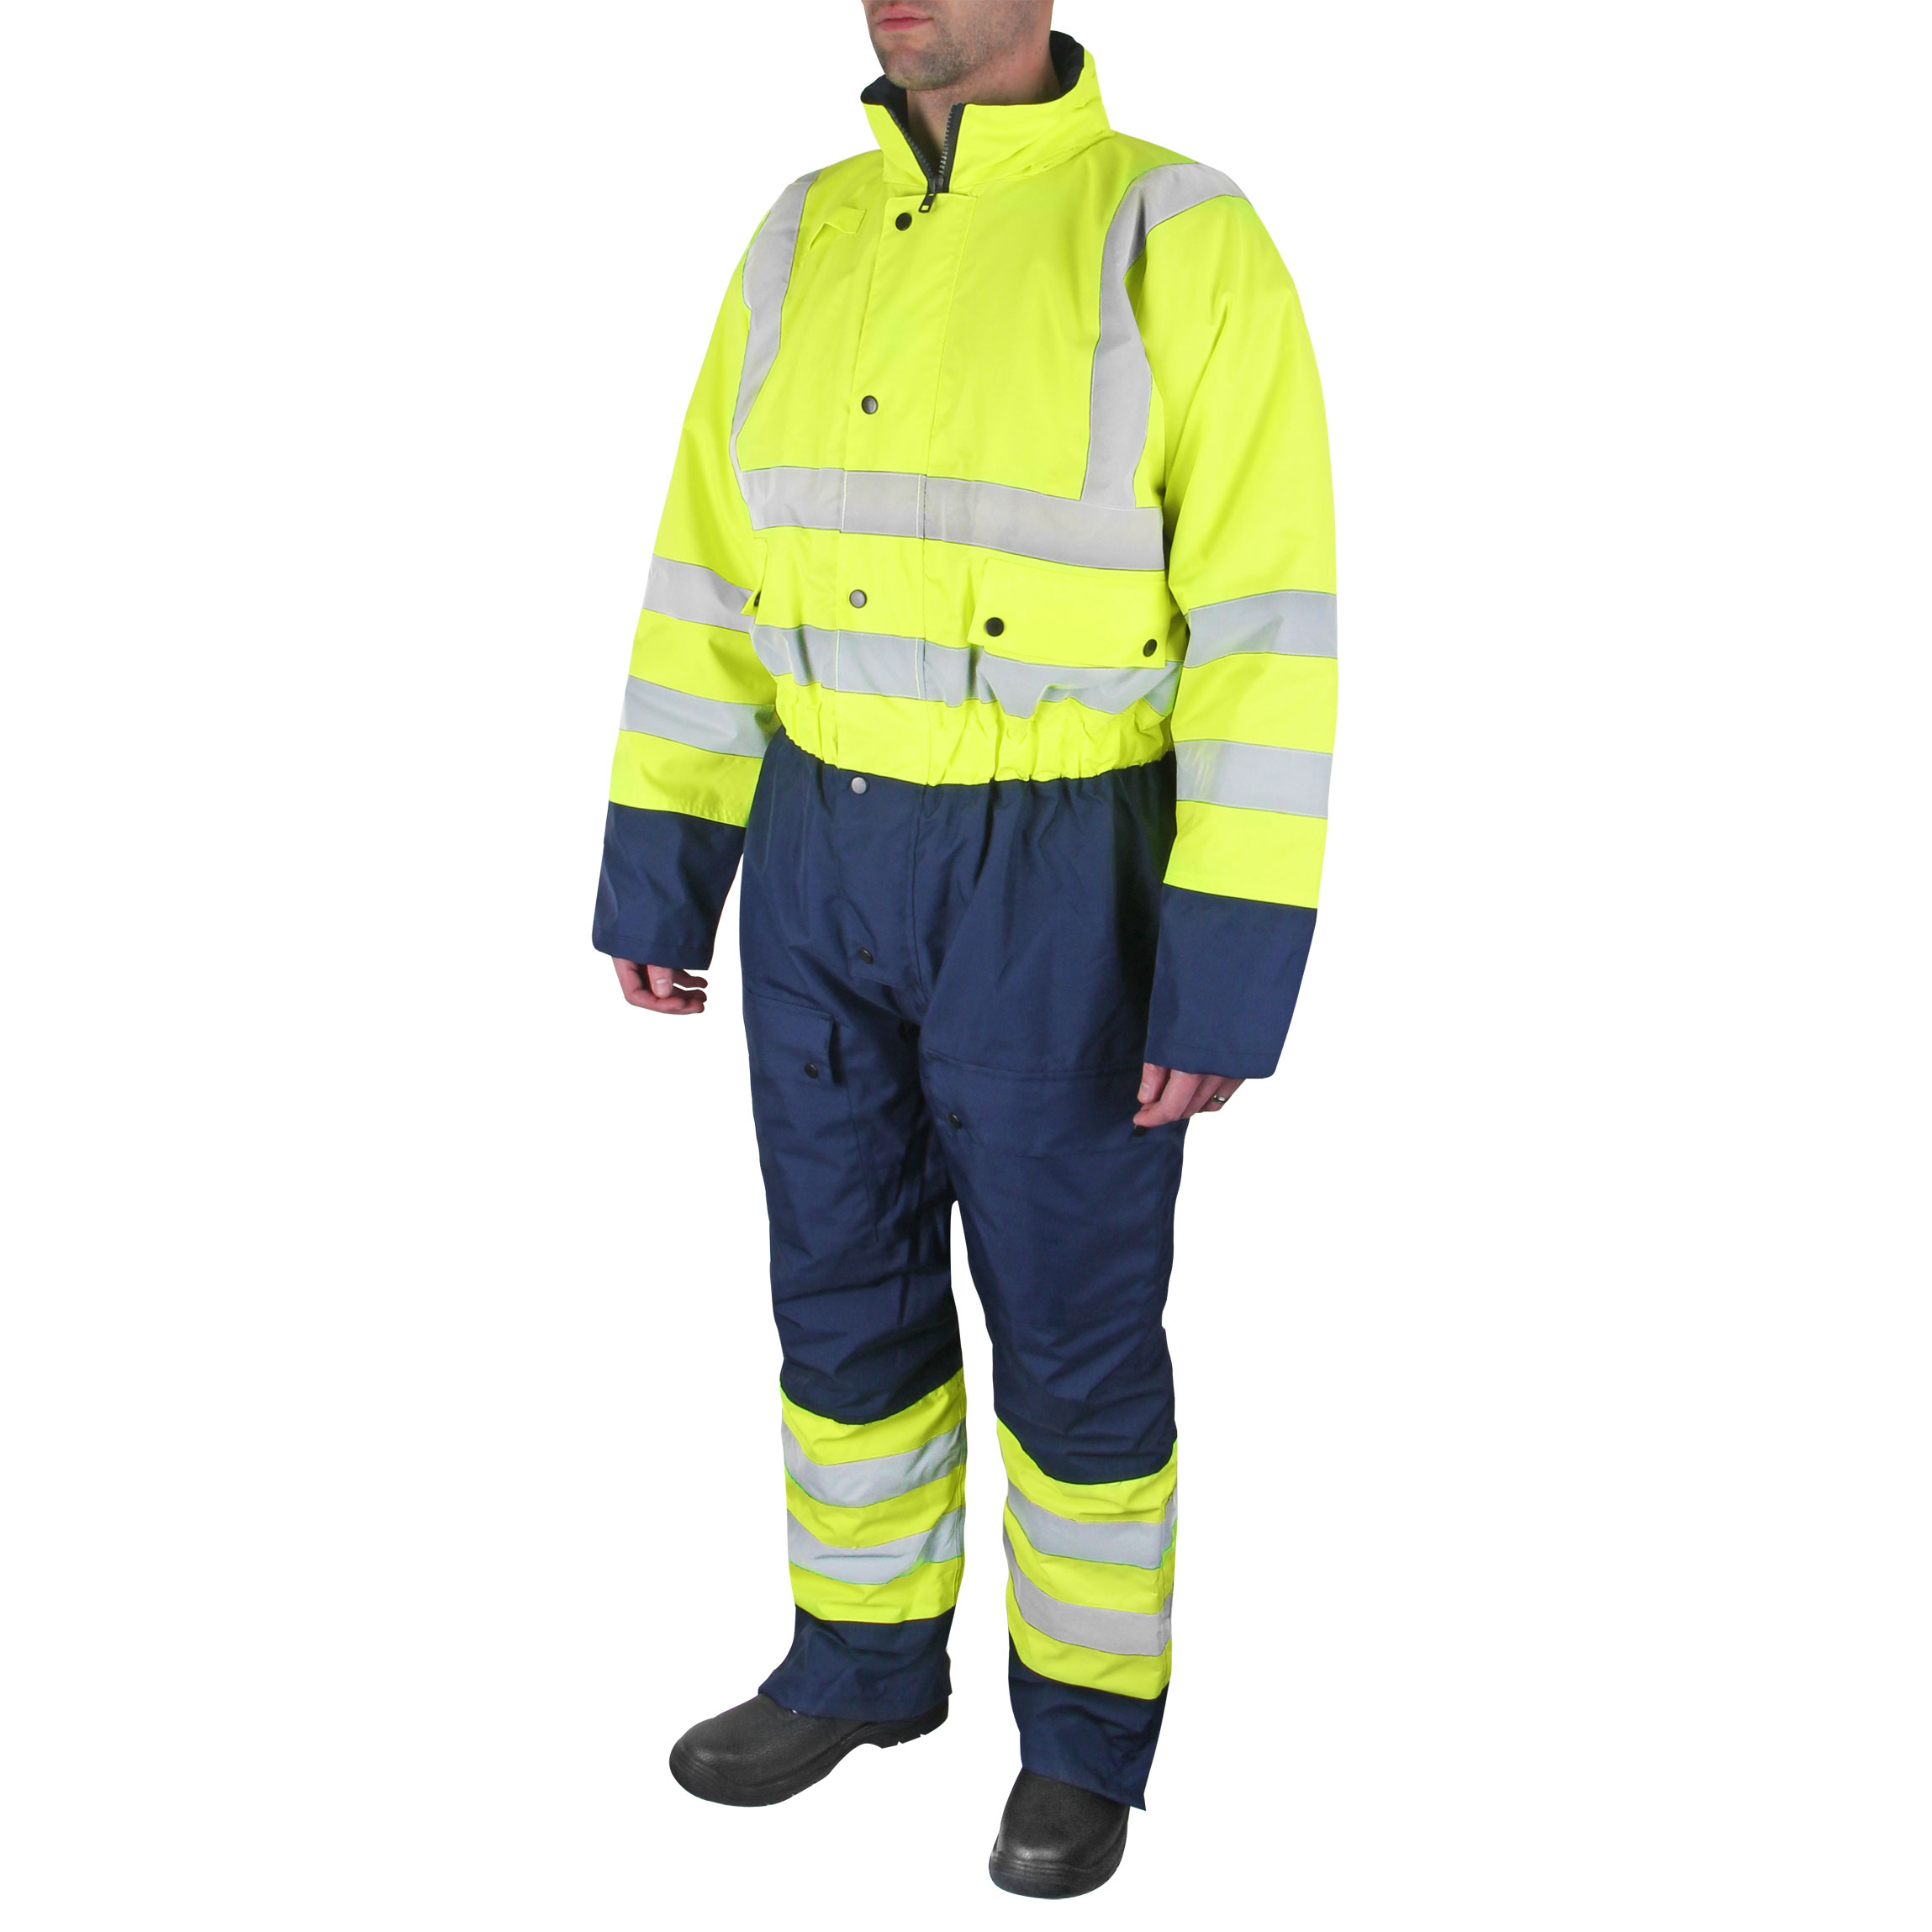 B-Seen Hi-Vis Thermal Waterproof Coveralls S Yellow/Navy Ref BD900SYNS Up to 3 Day Leadtime